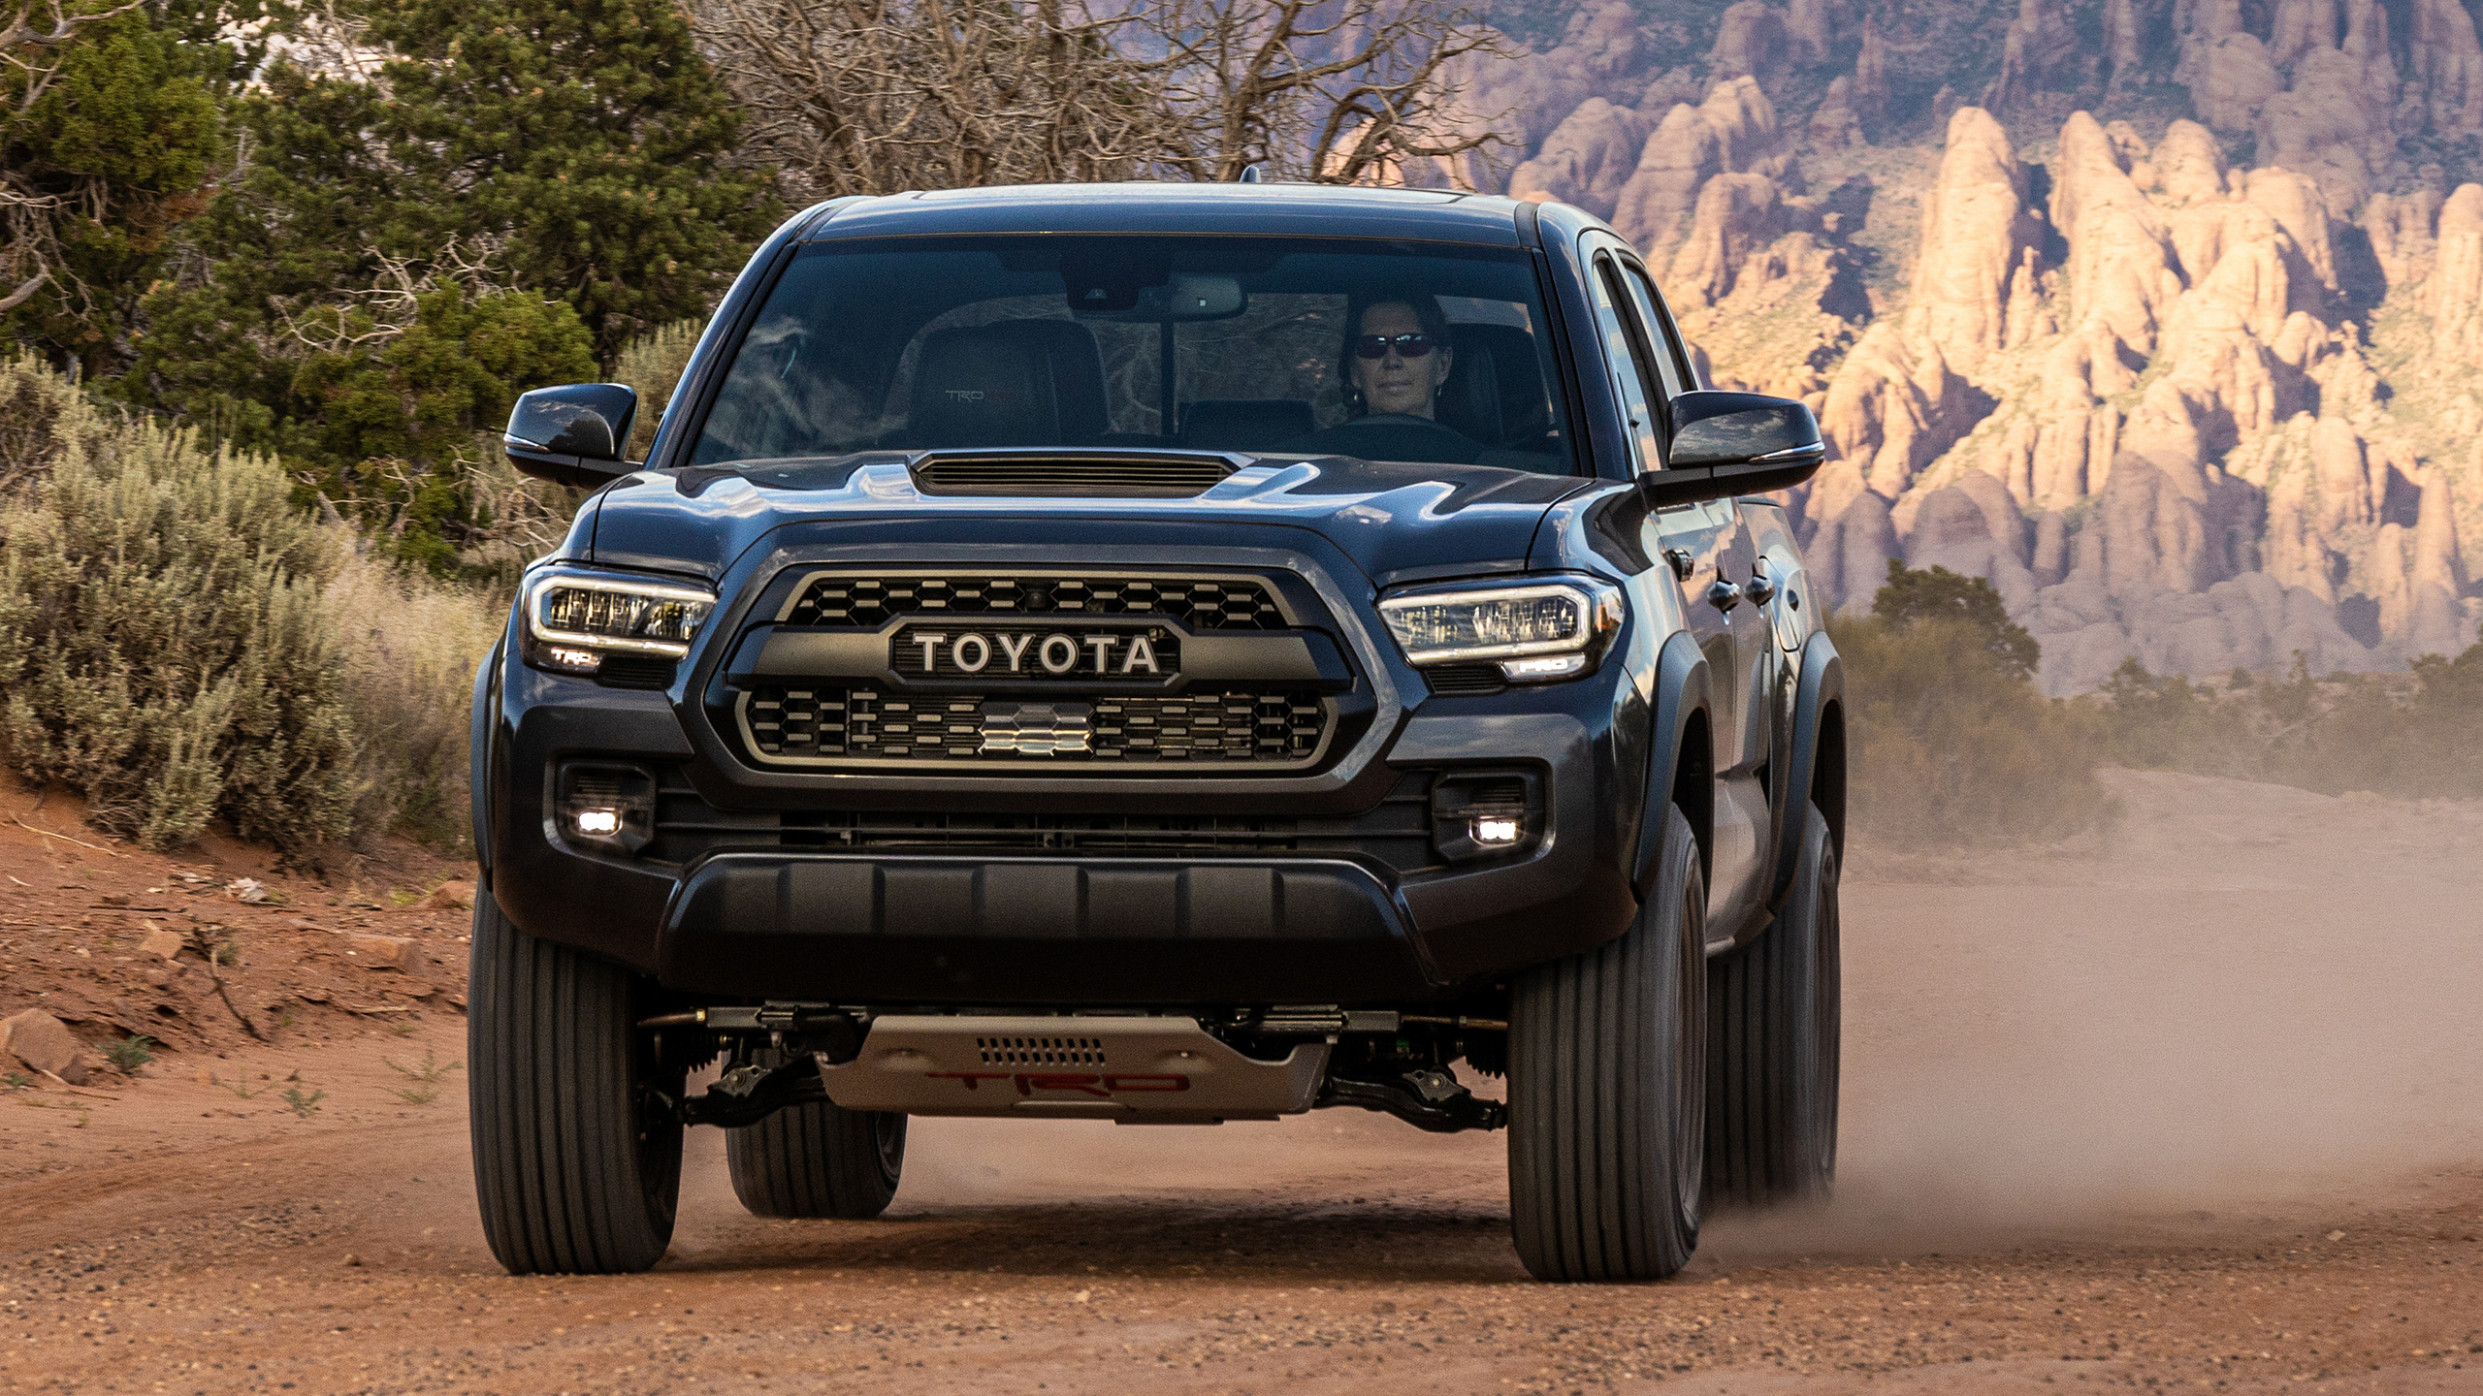 9 Toyota Tacoma Review | Prices, specs, features and photos ..